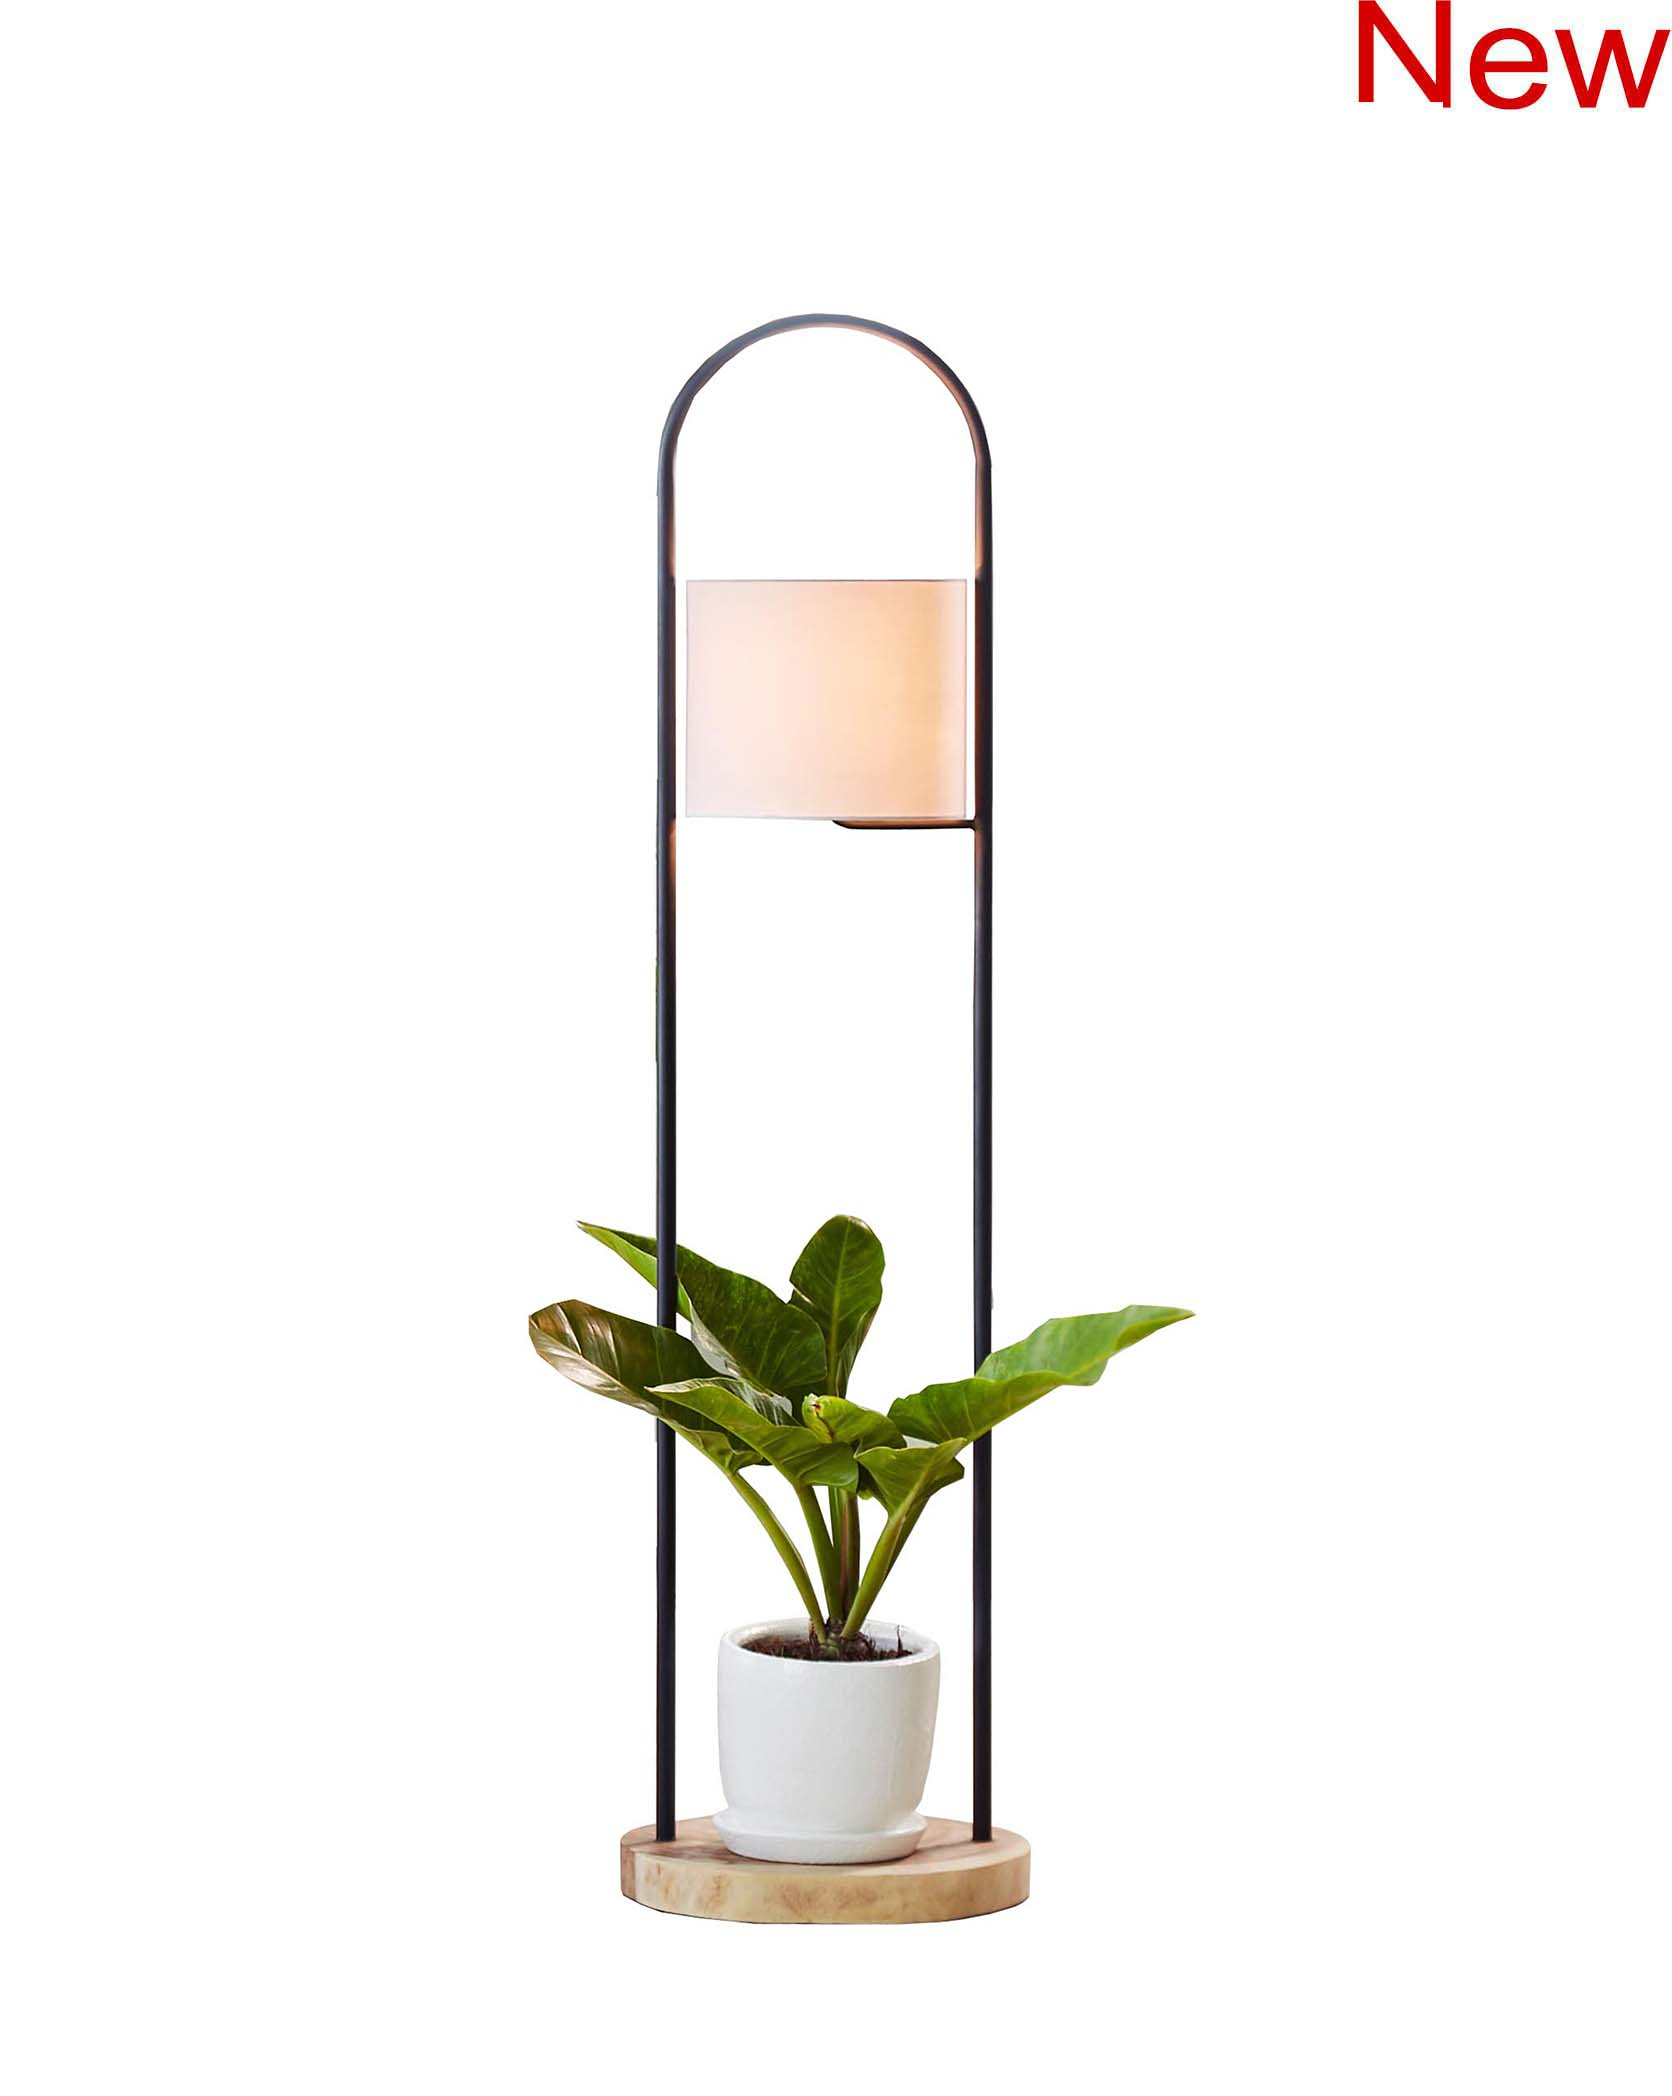 Acacia lamp and planter, without pot (Knock Down) product photo #2